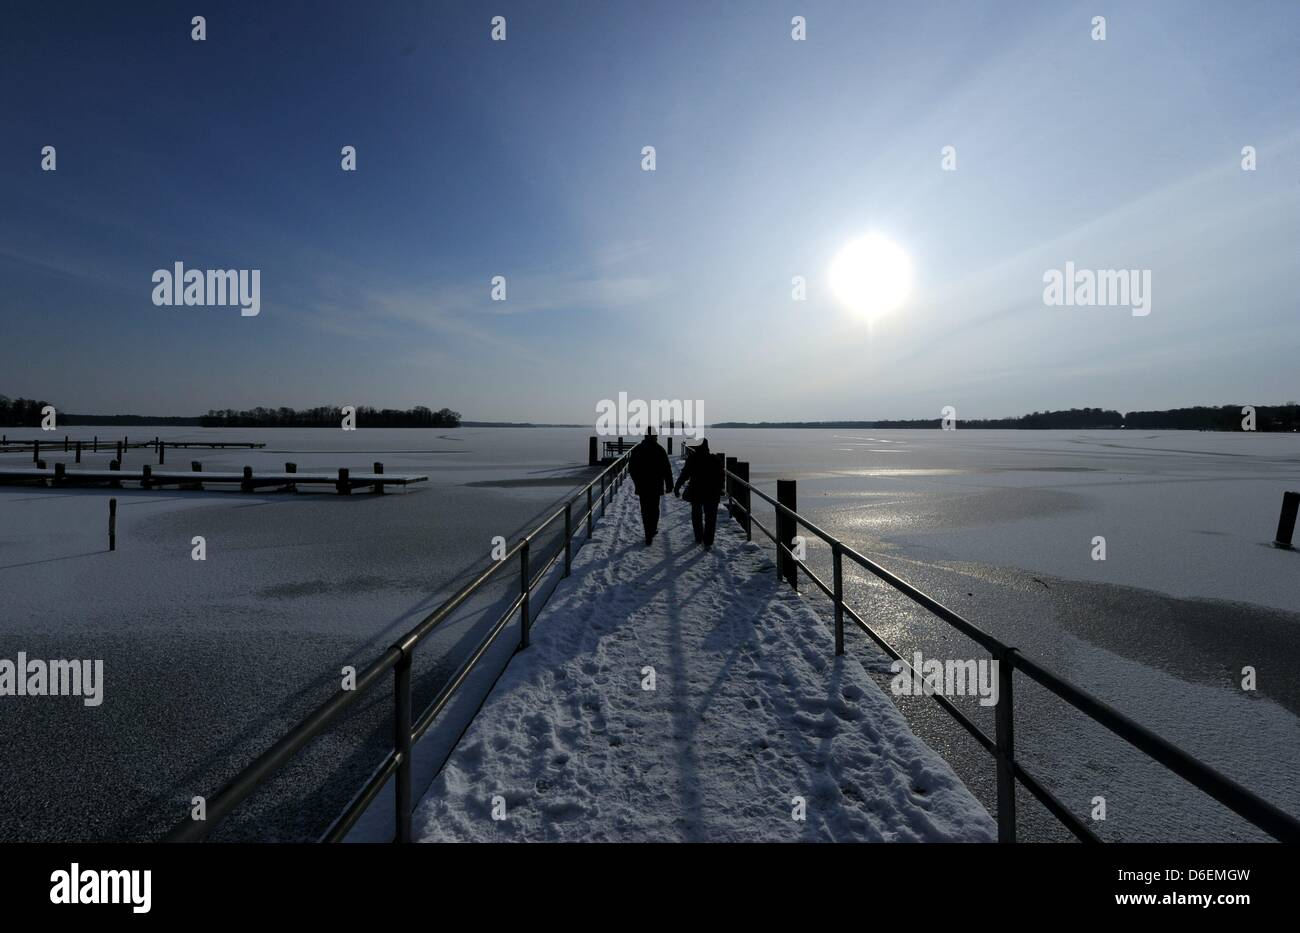 People walk on a jetty at Lake Ploen in Ploen, Germany, 05 February 2012. The sunny but chilly weather made many - Stock Image